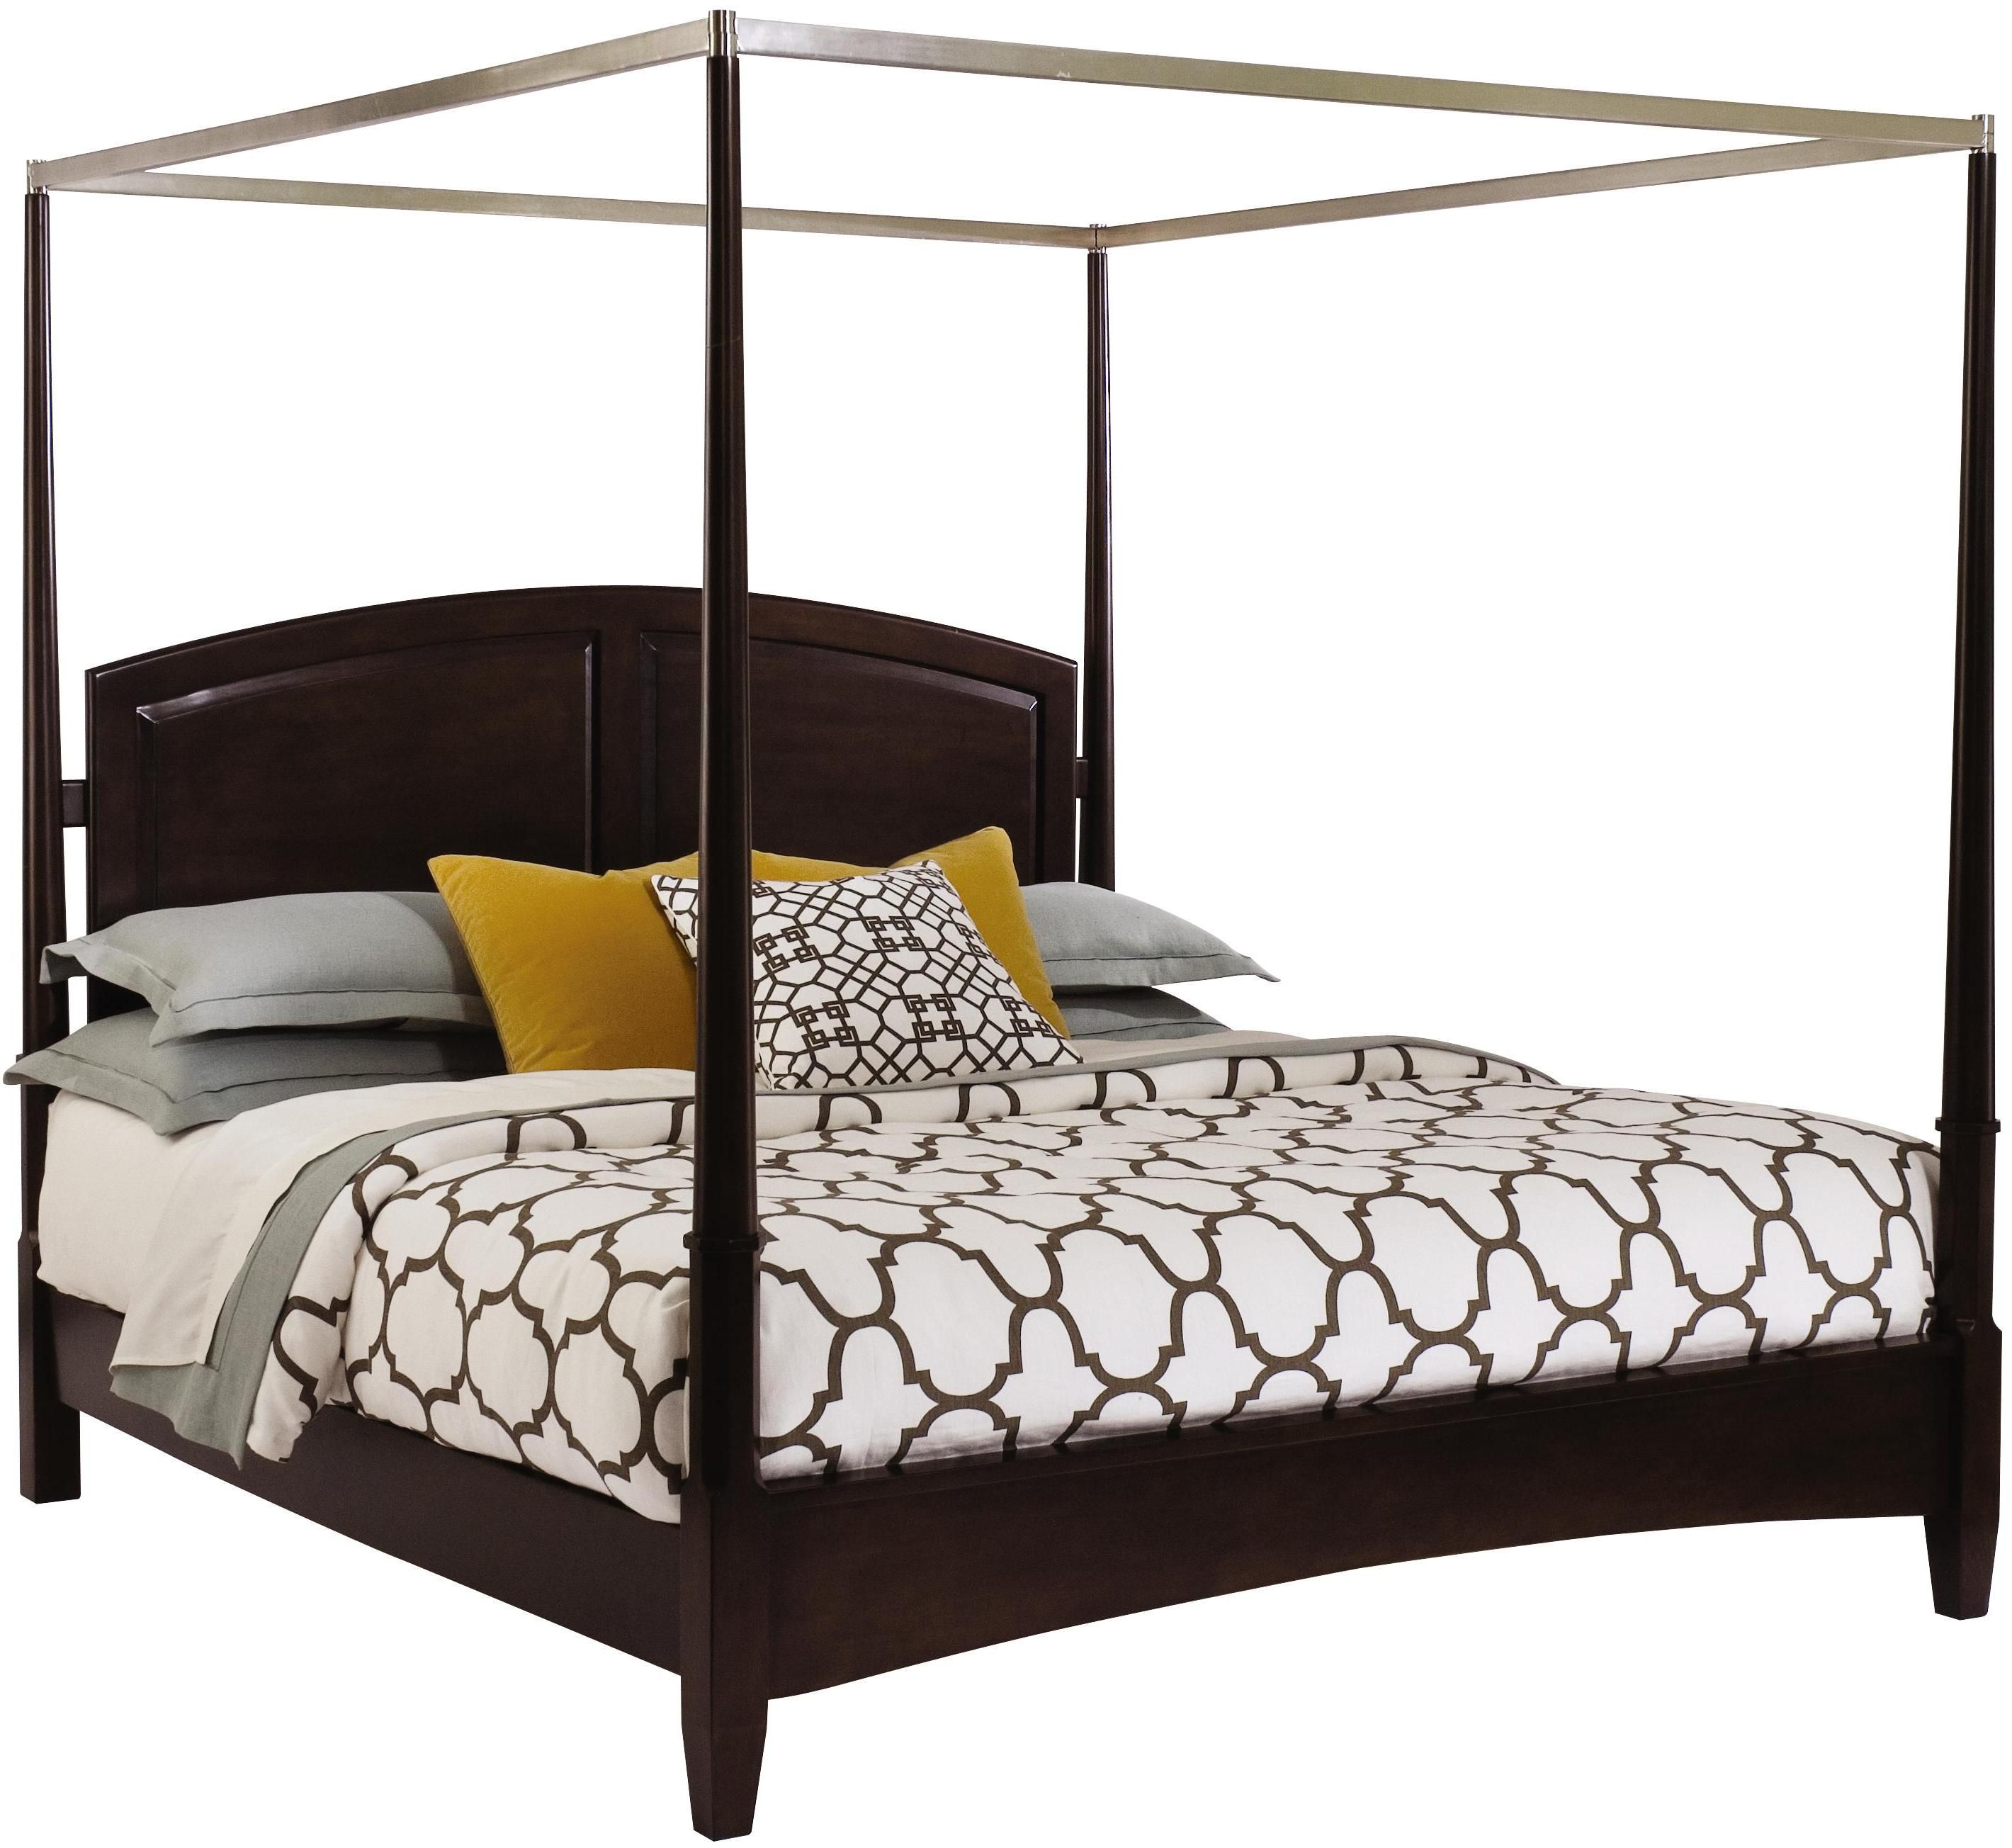 Alston King Canopy Bed by Kincaid Furniture -Rochester, NY Rep ...